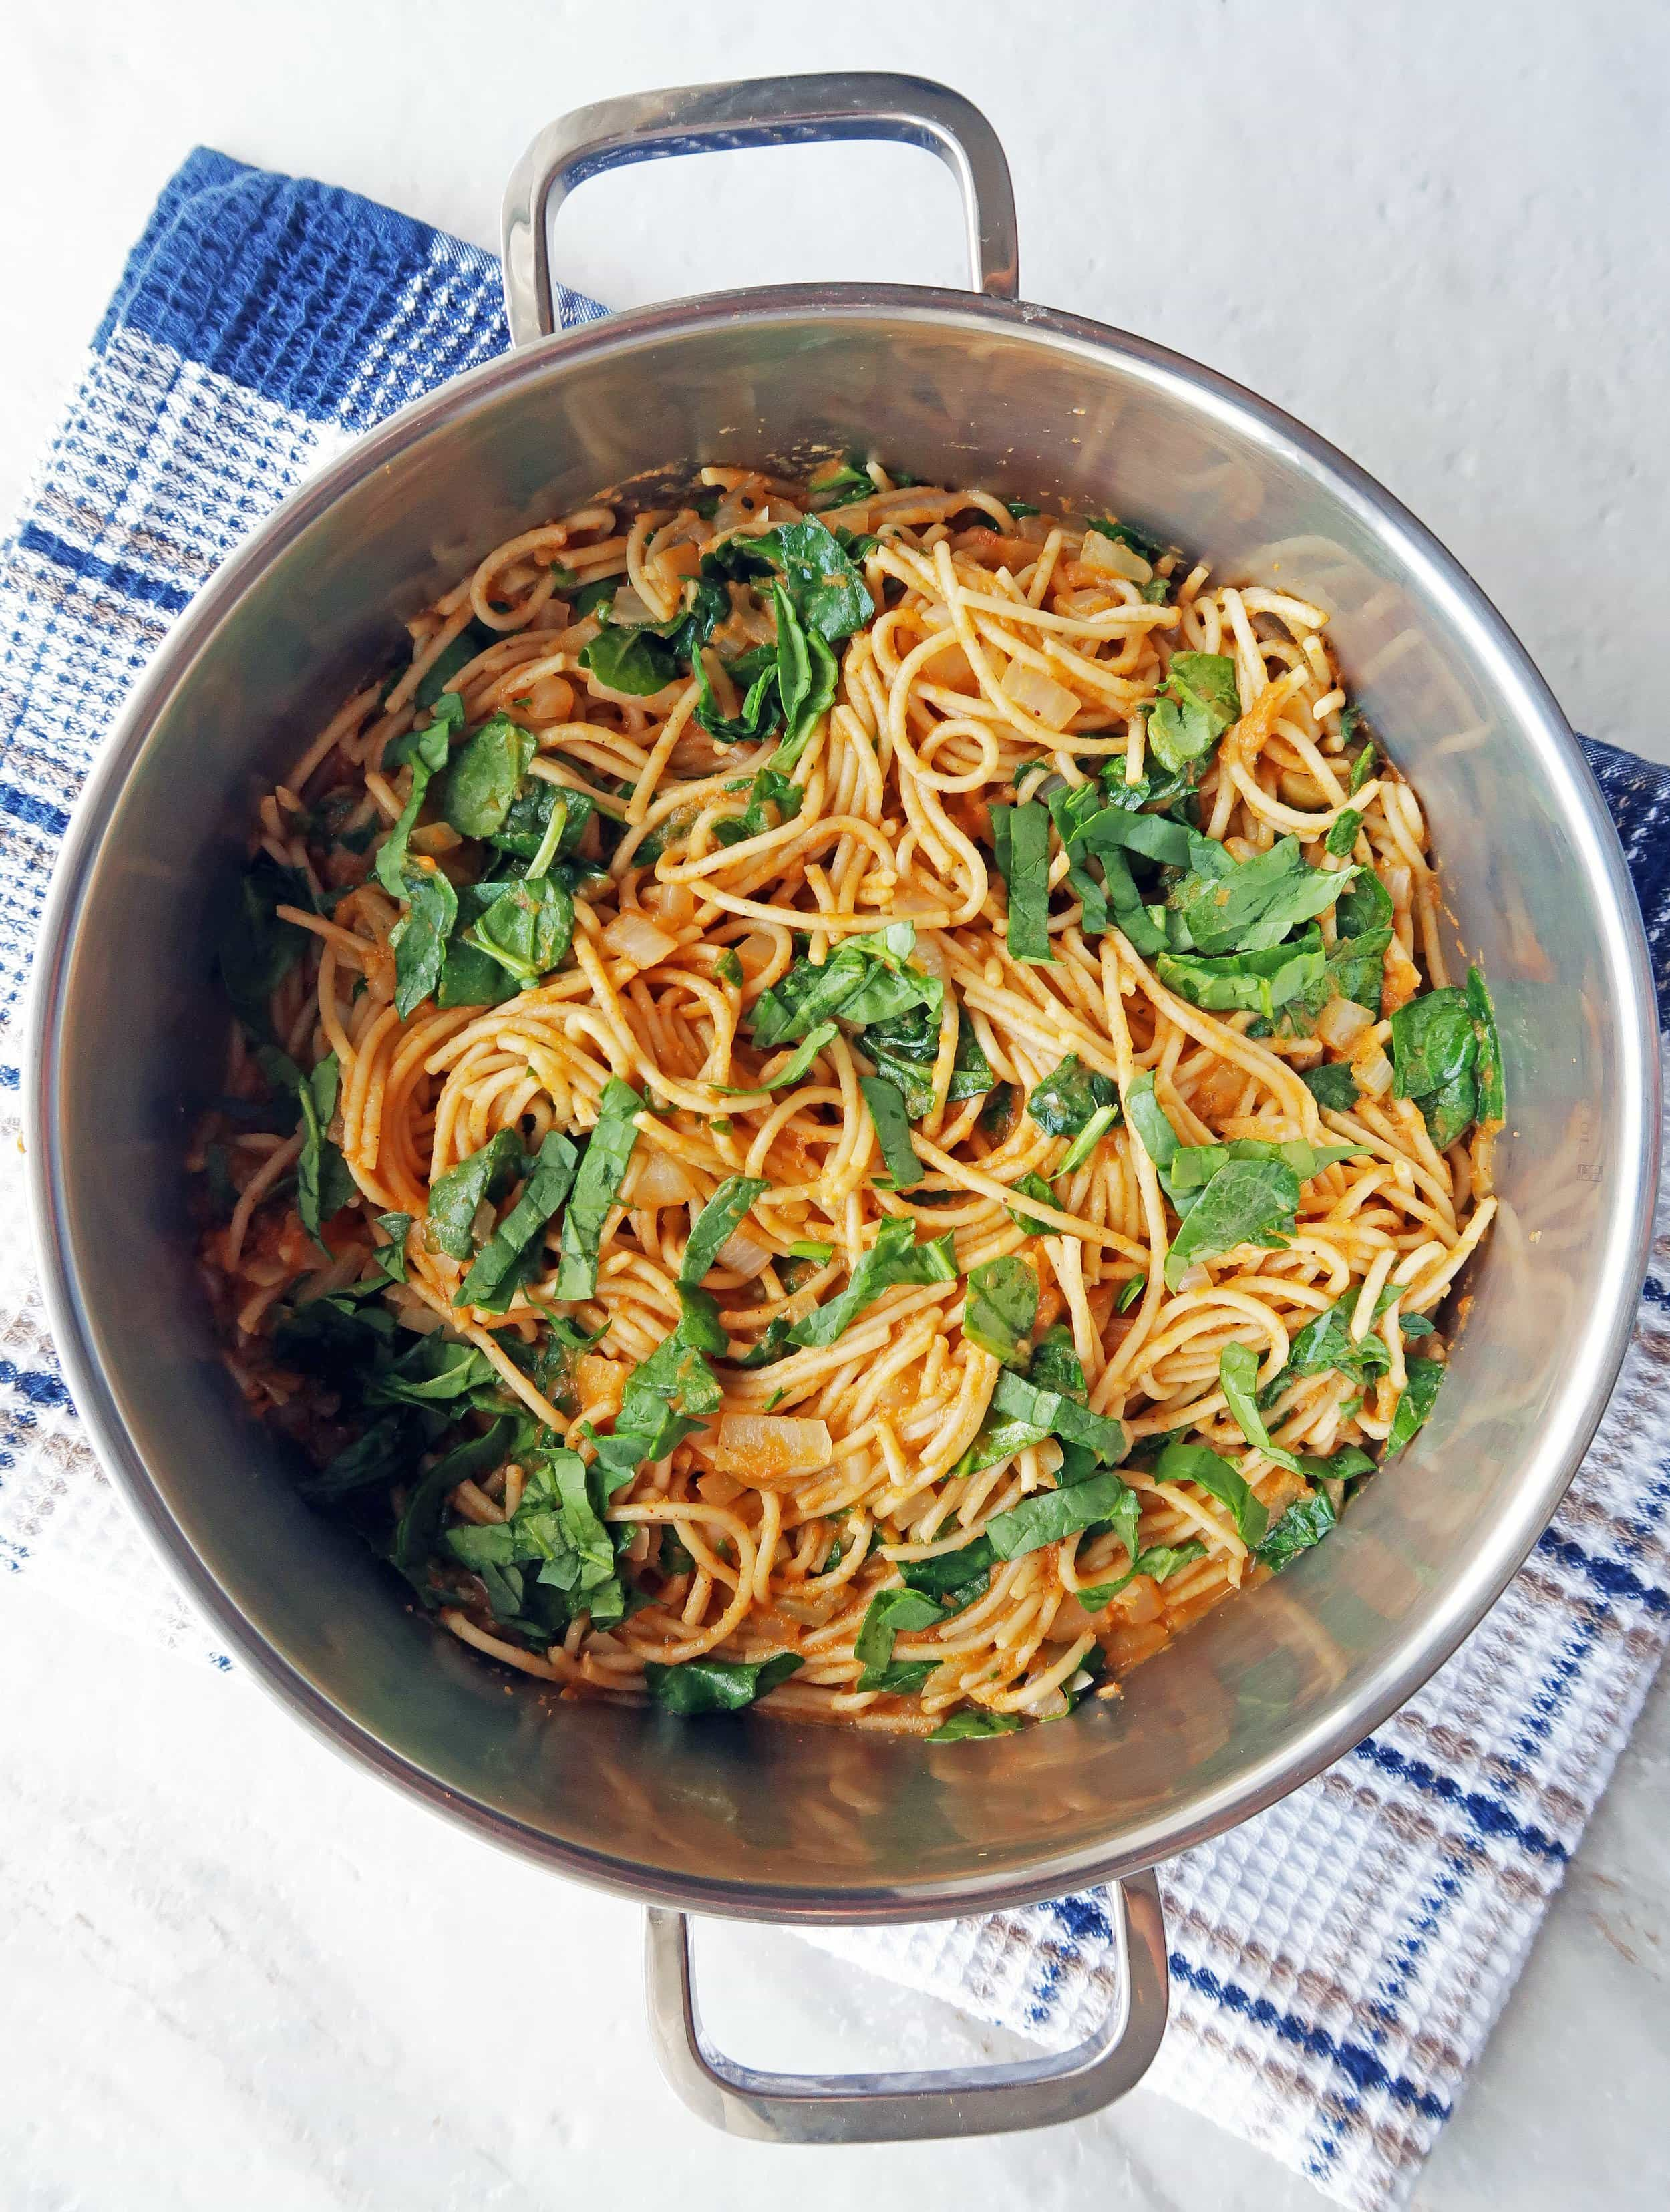 Spaghetti with creamy pumpkin sauce and fresh spinach in a large metal pot.